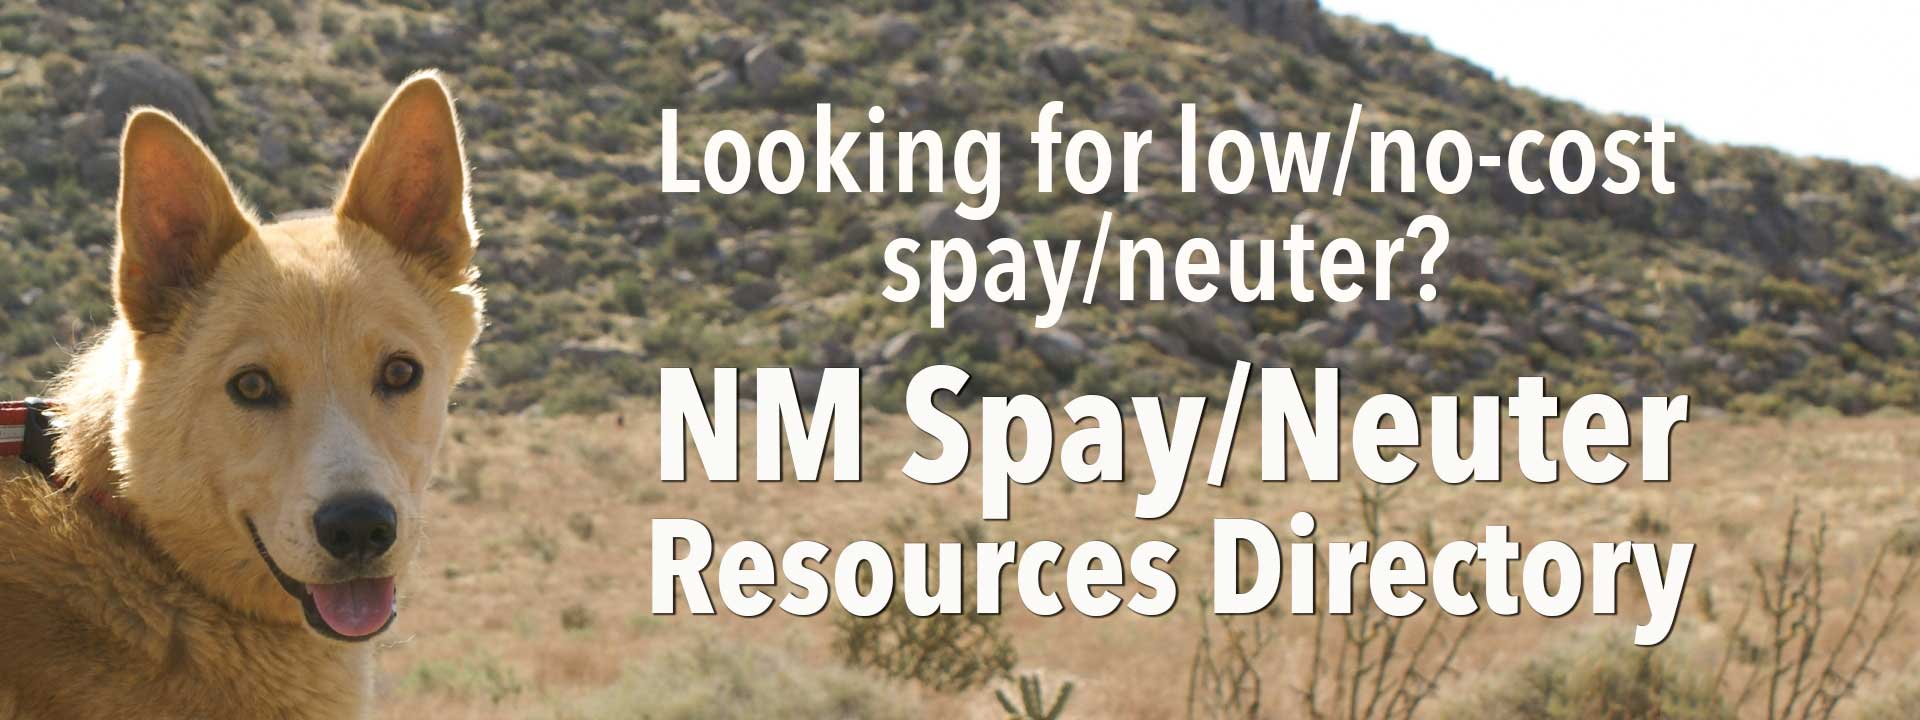 NM Spay/Neuter Resources Directory